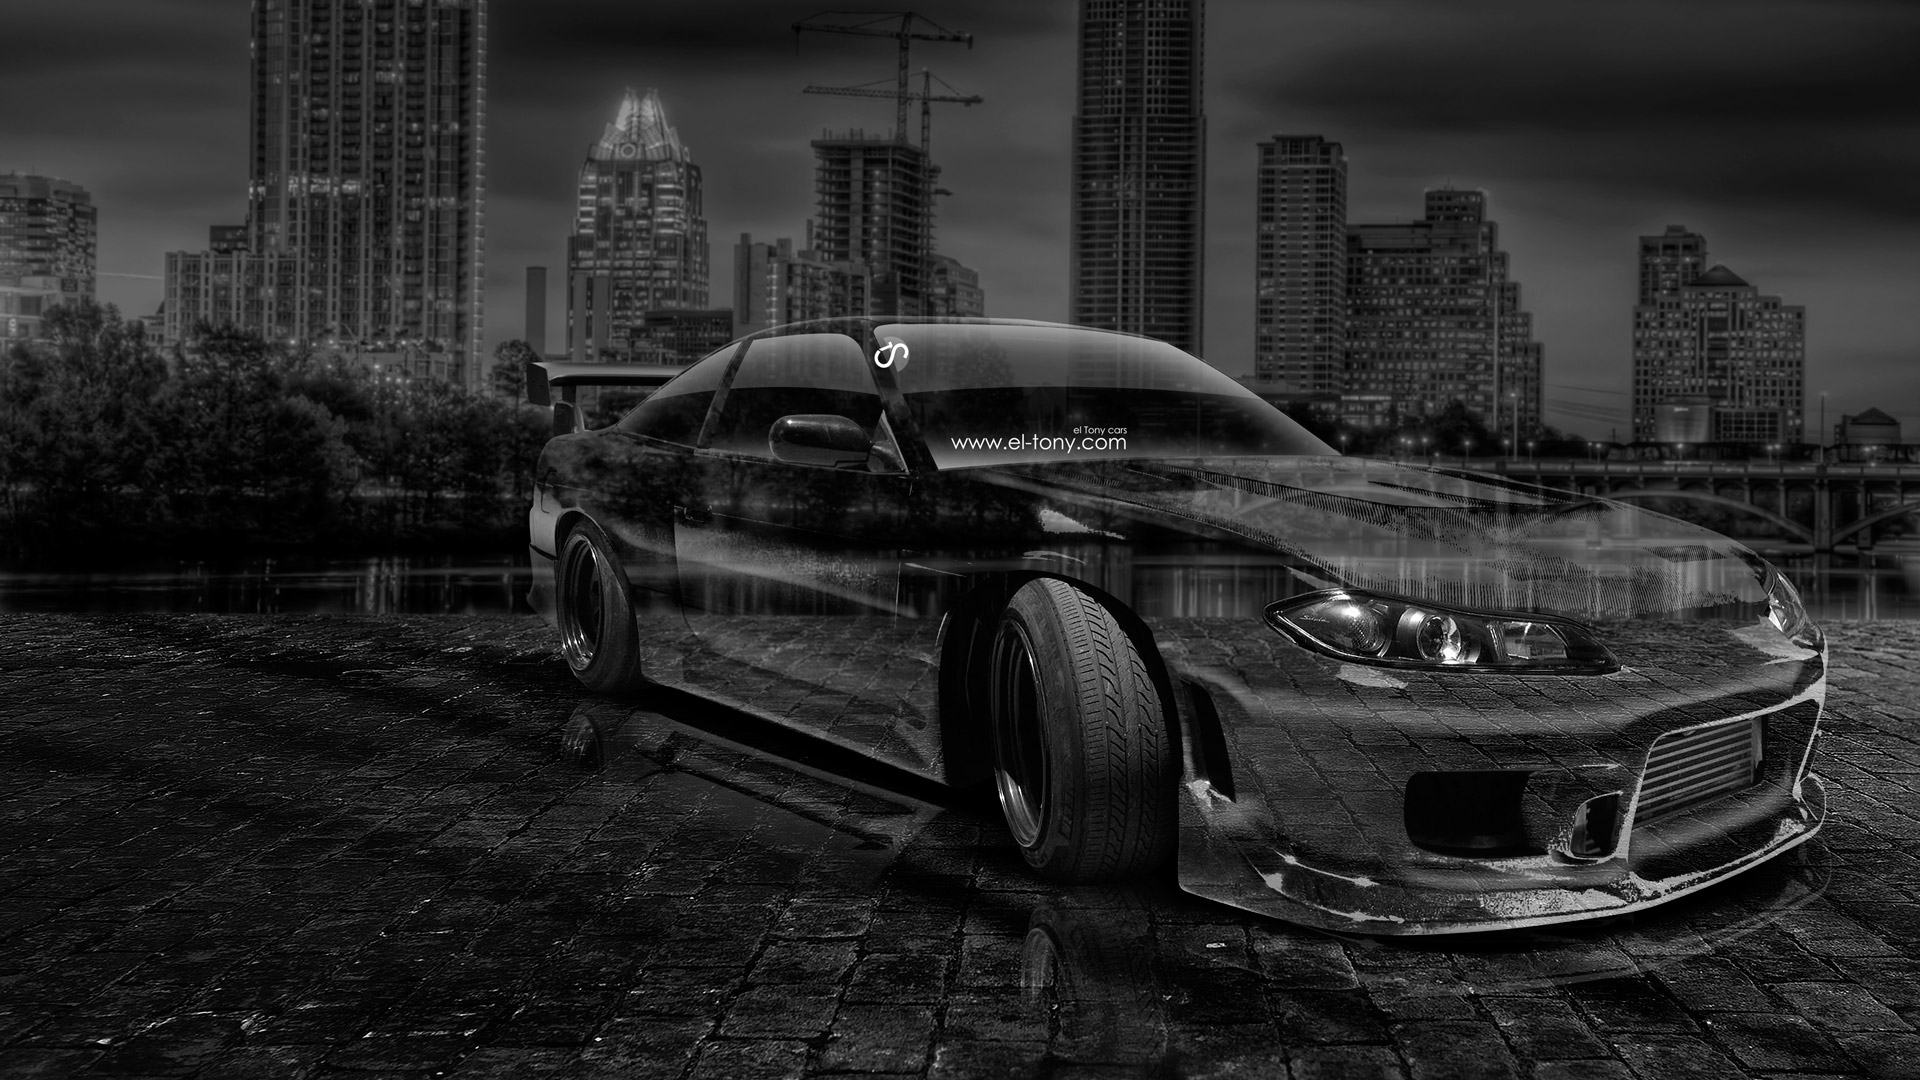 Nissan-Silvia-240SX-Facelift-S15-JDM-Crystal-City-Car-2014-Black-White-HD-Wallpapers-design-by-Tony-Kokhan-[www.el-tony.com]